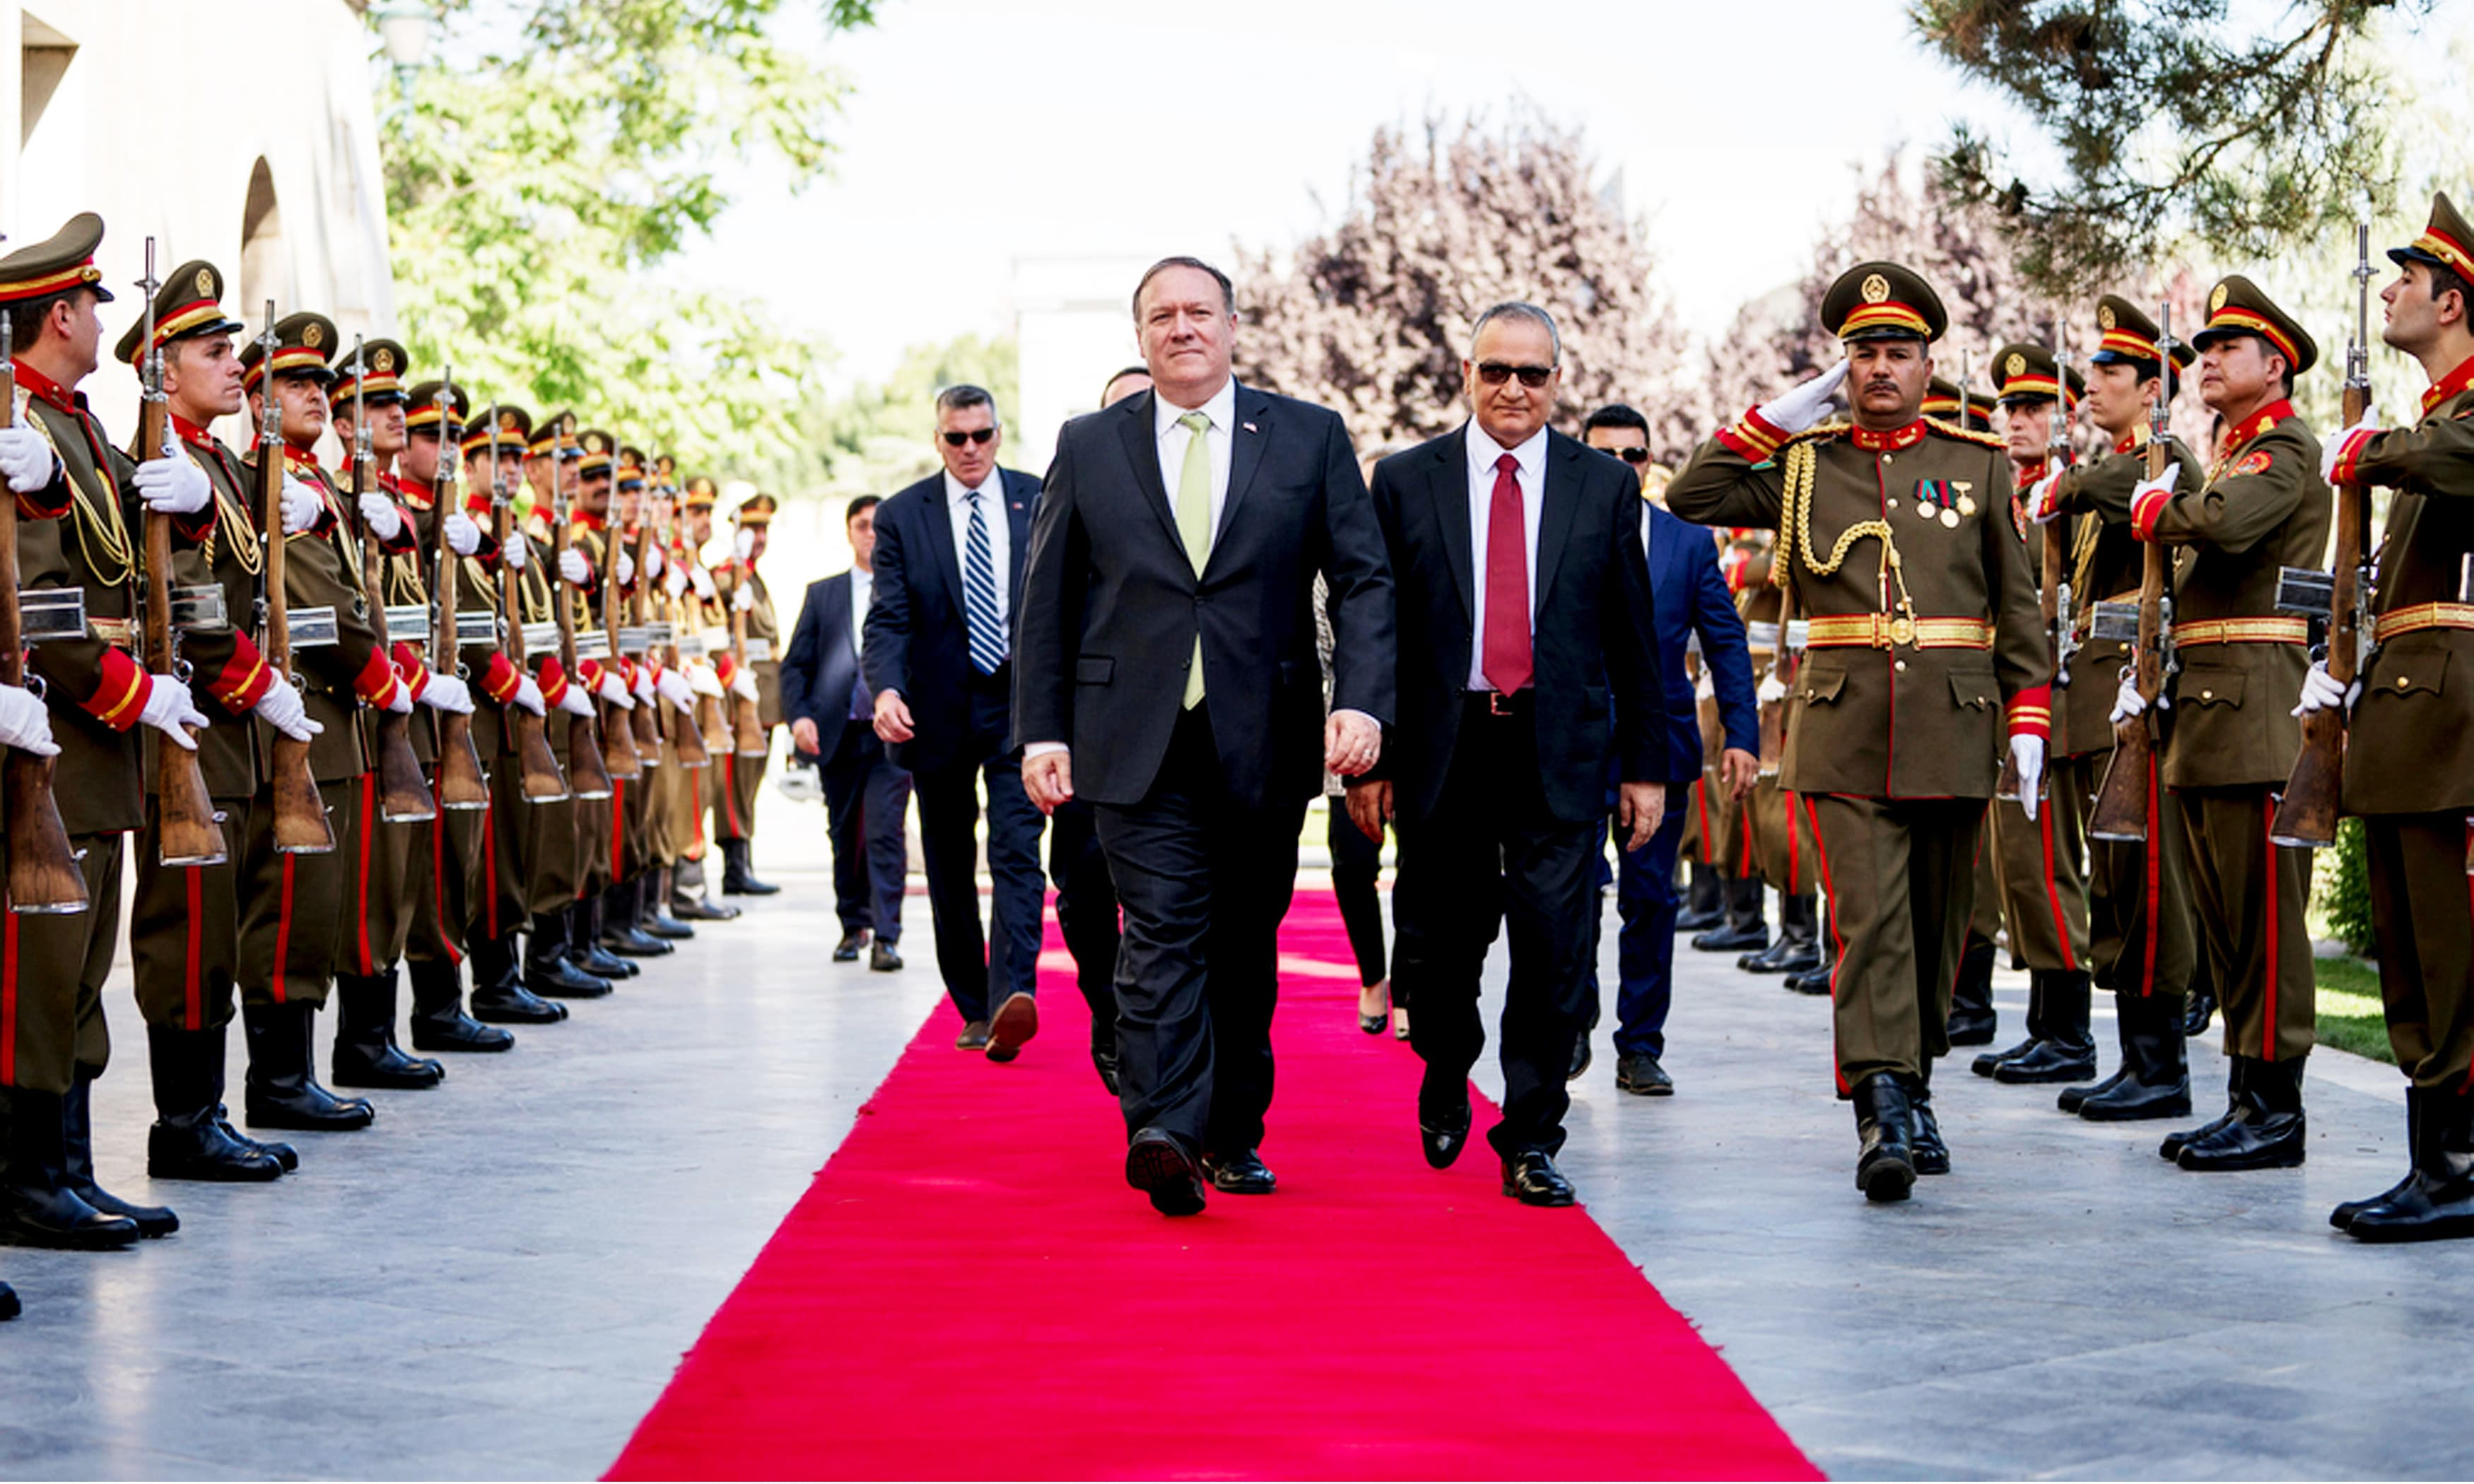 Mike Pompeo visits Kabul for talks with Afghan leaders amid optimism for peace